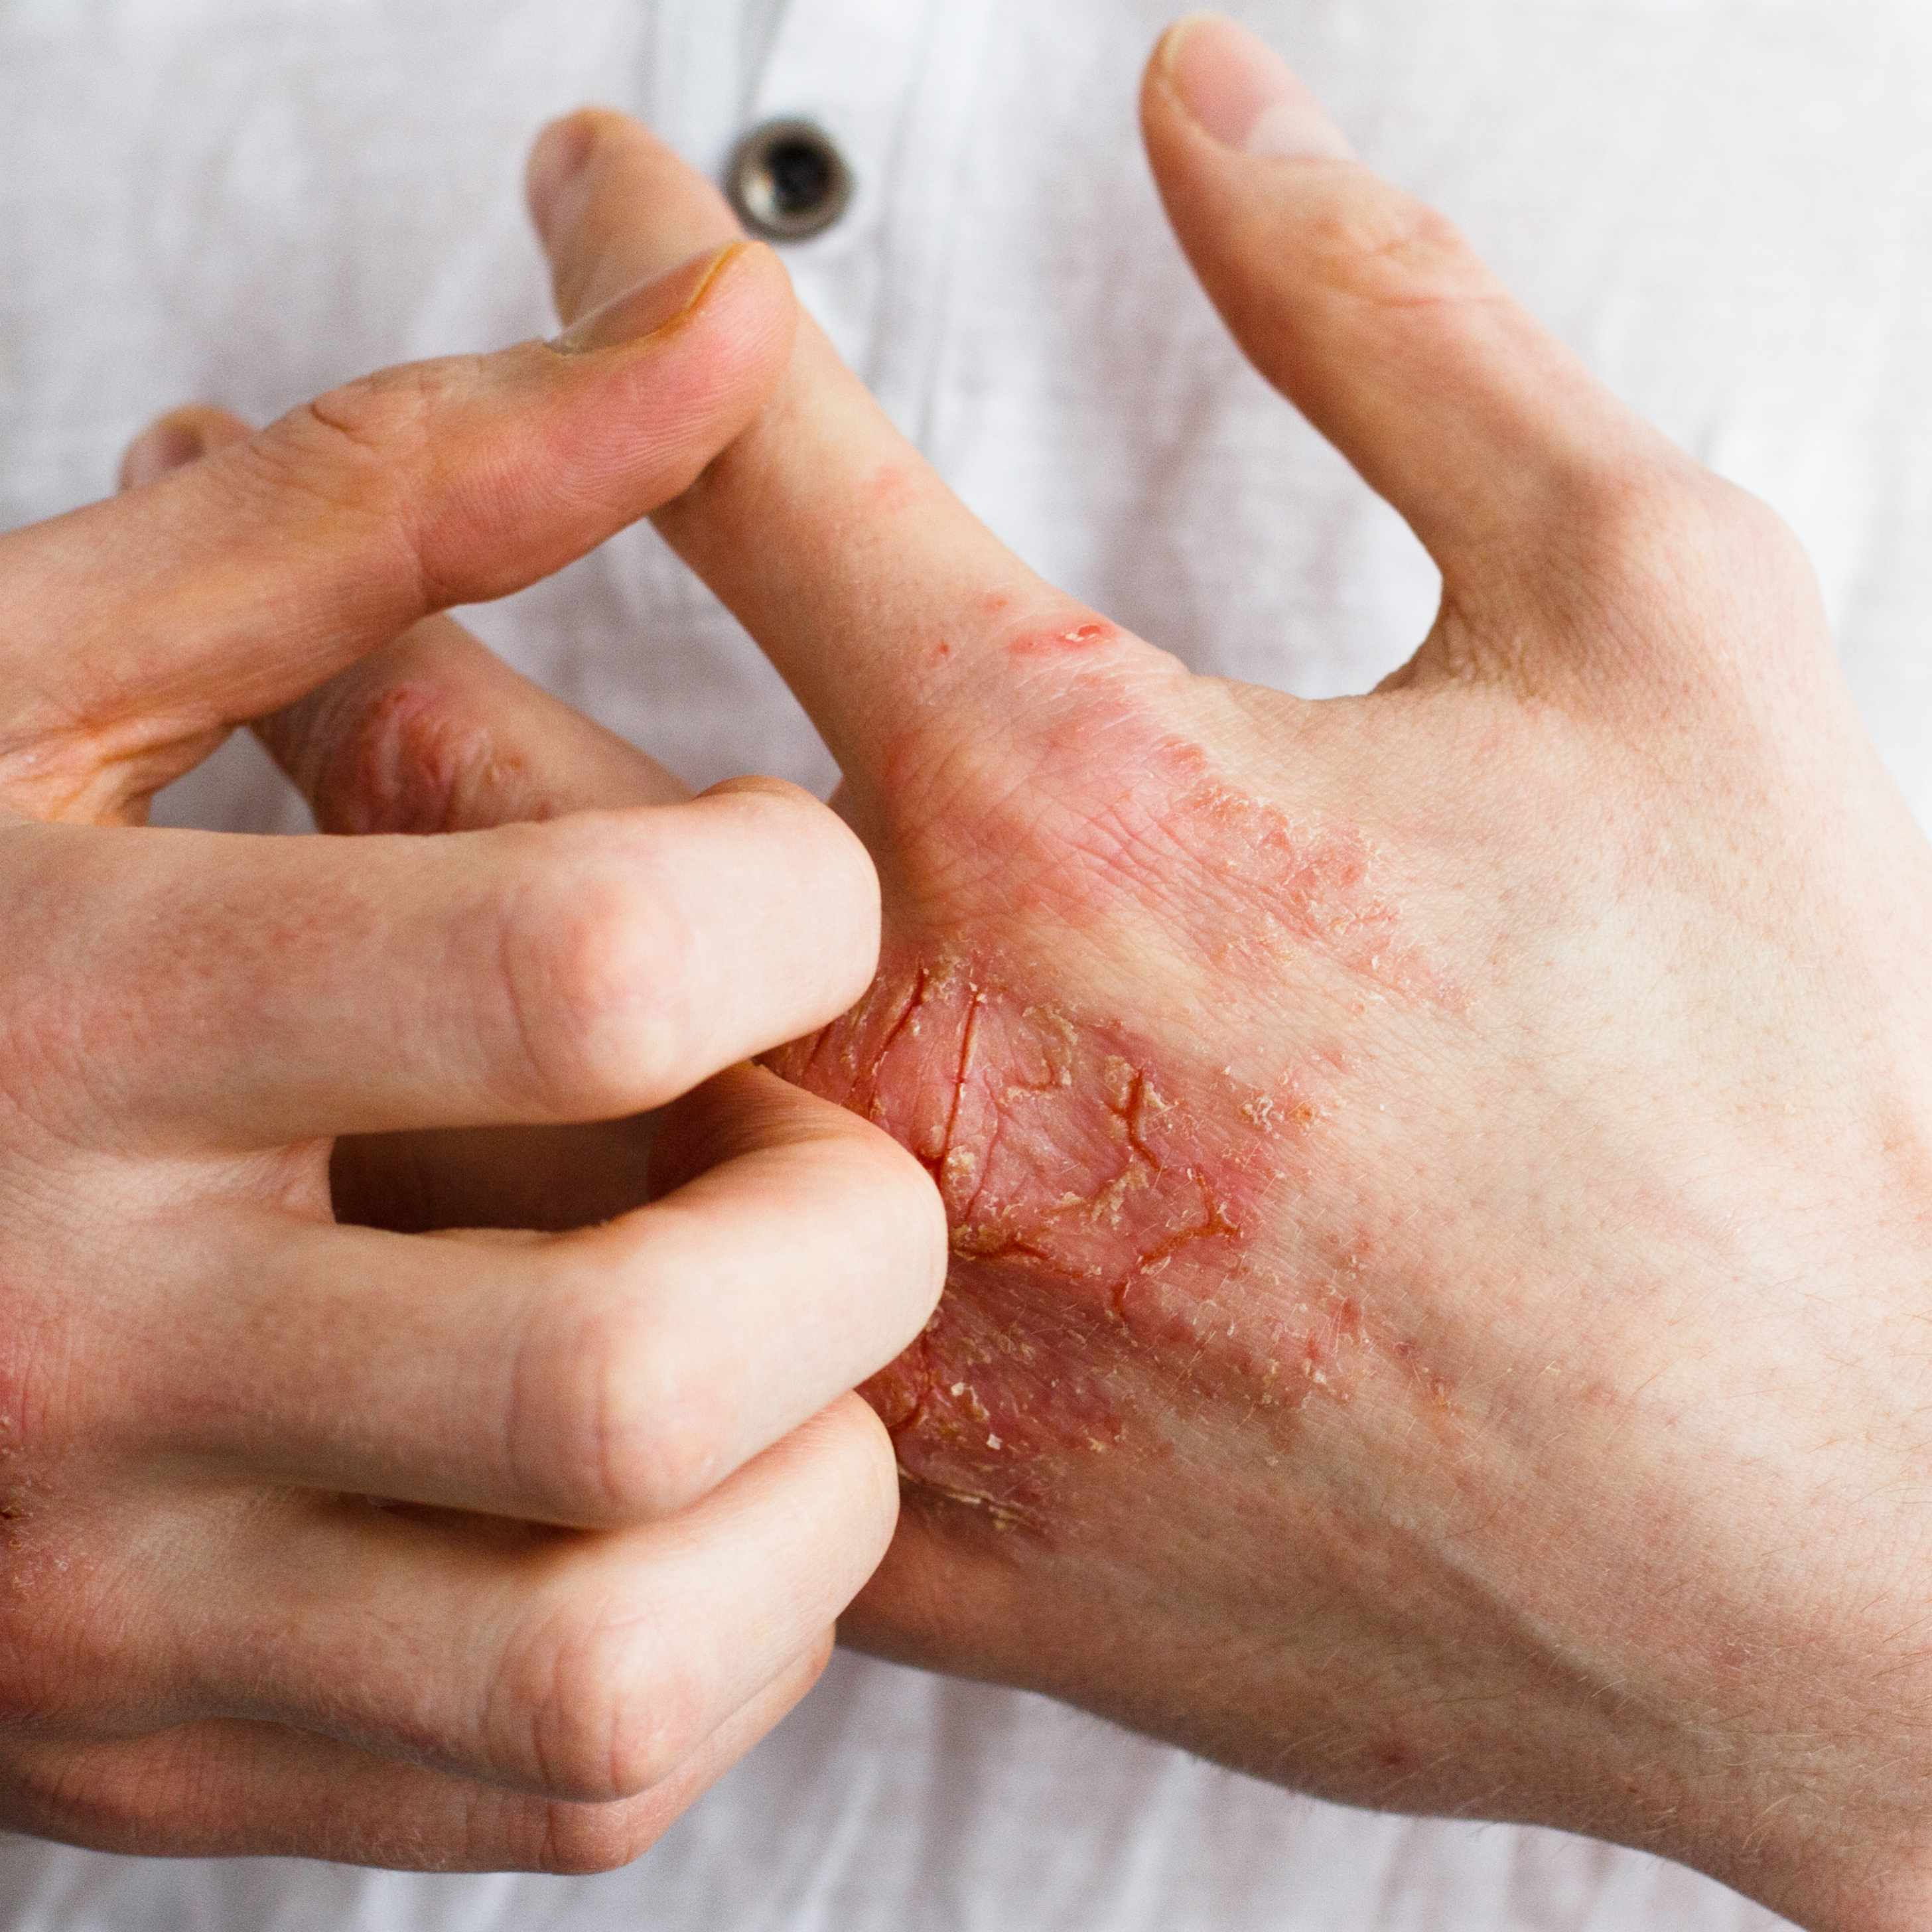 a person with eczema scratching the itchy skin